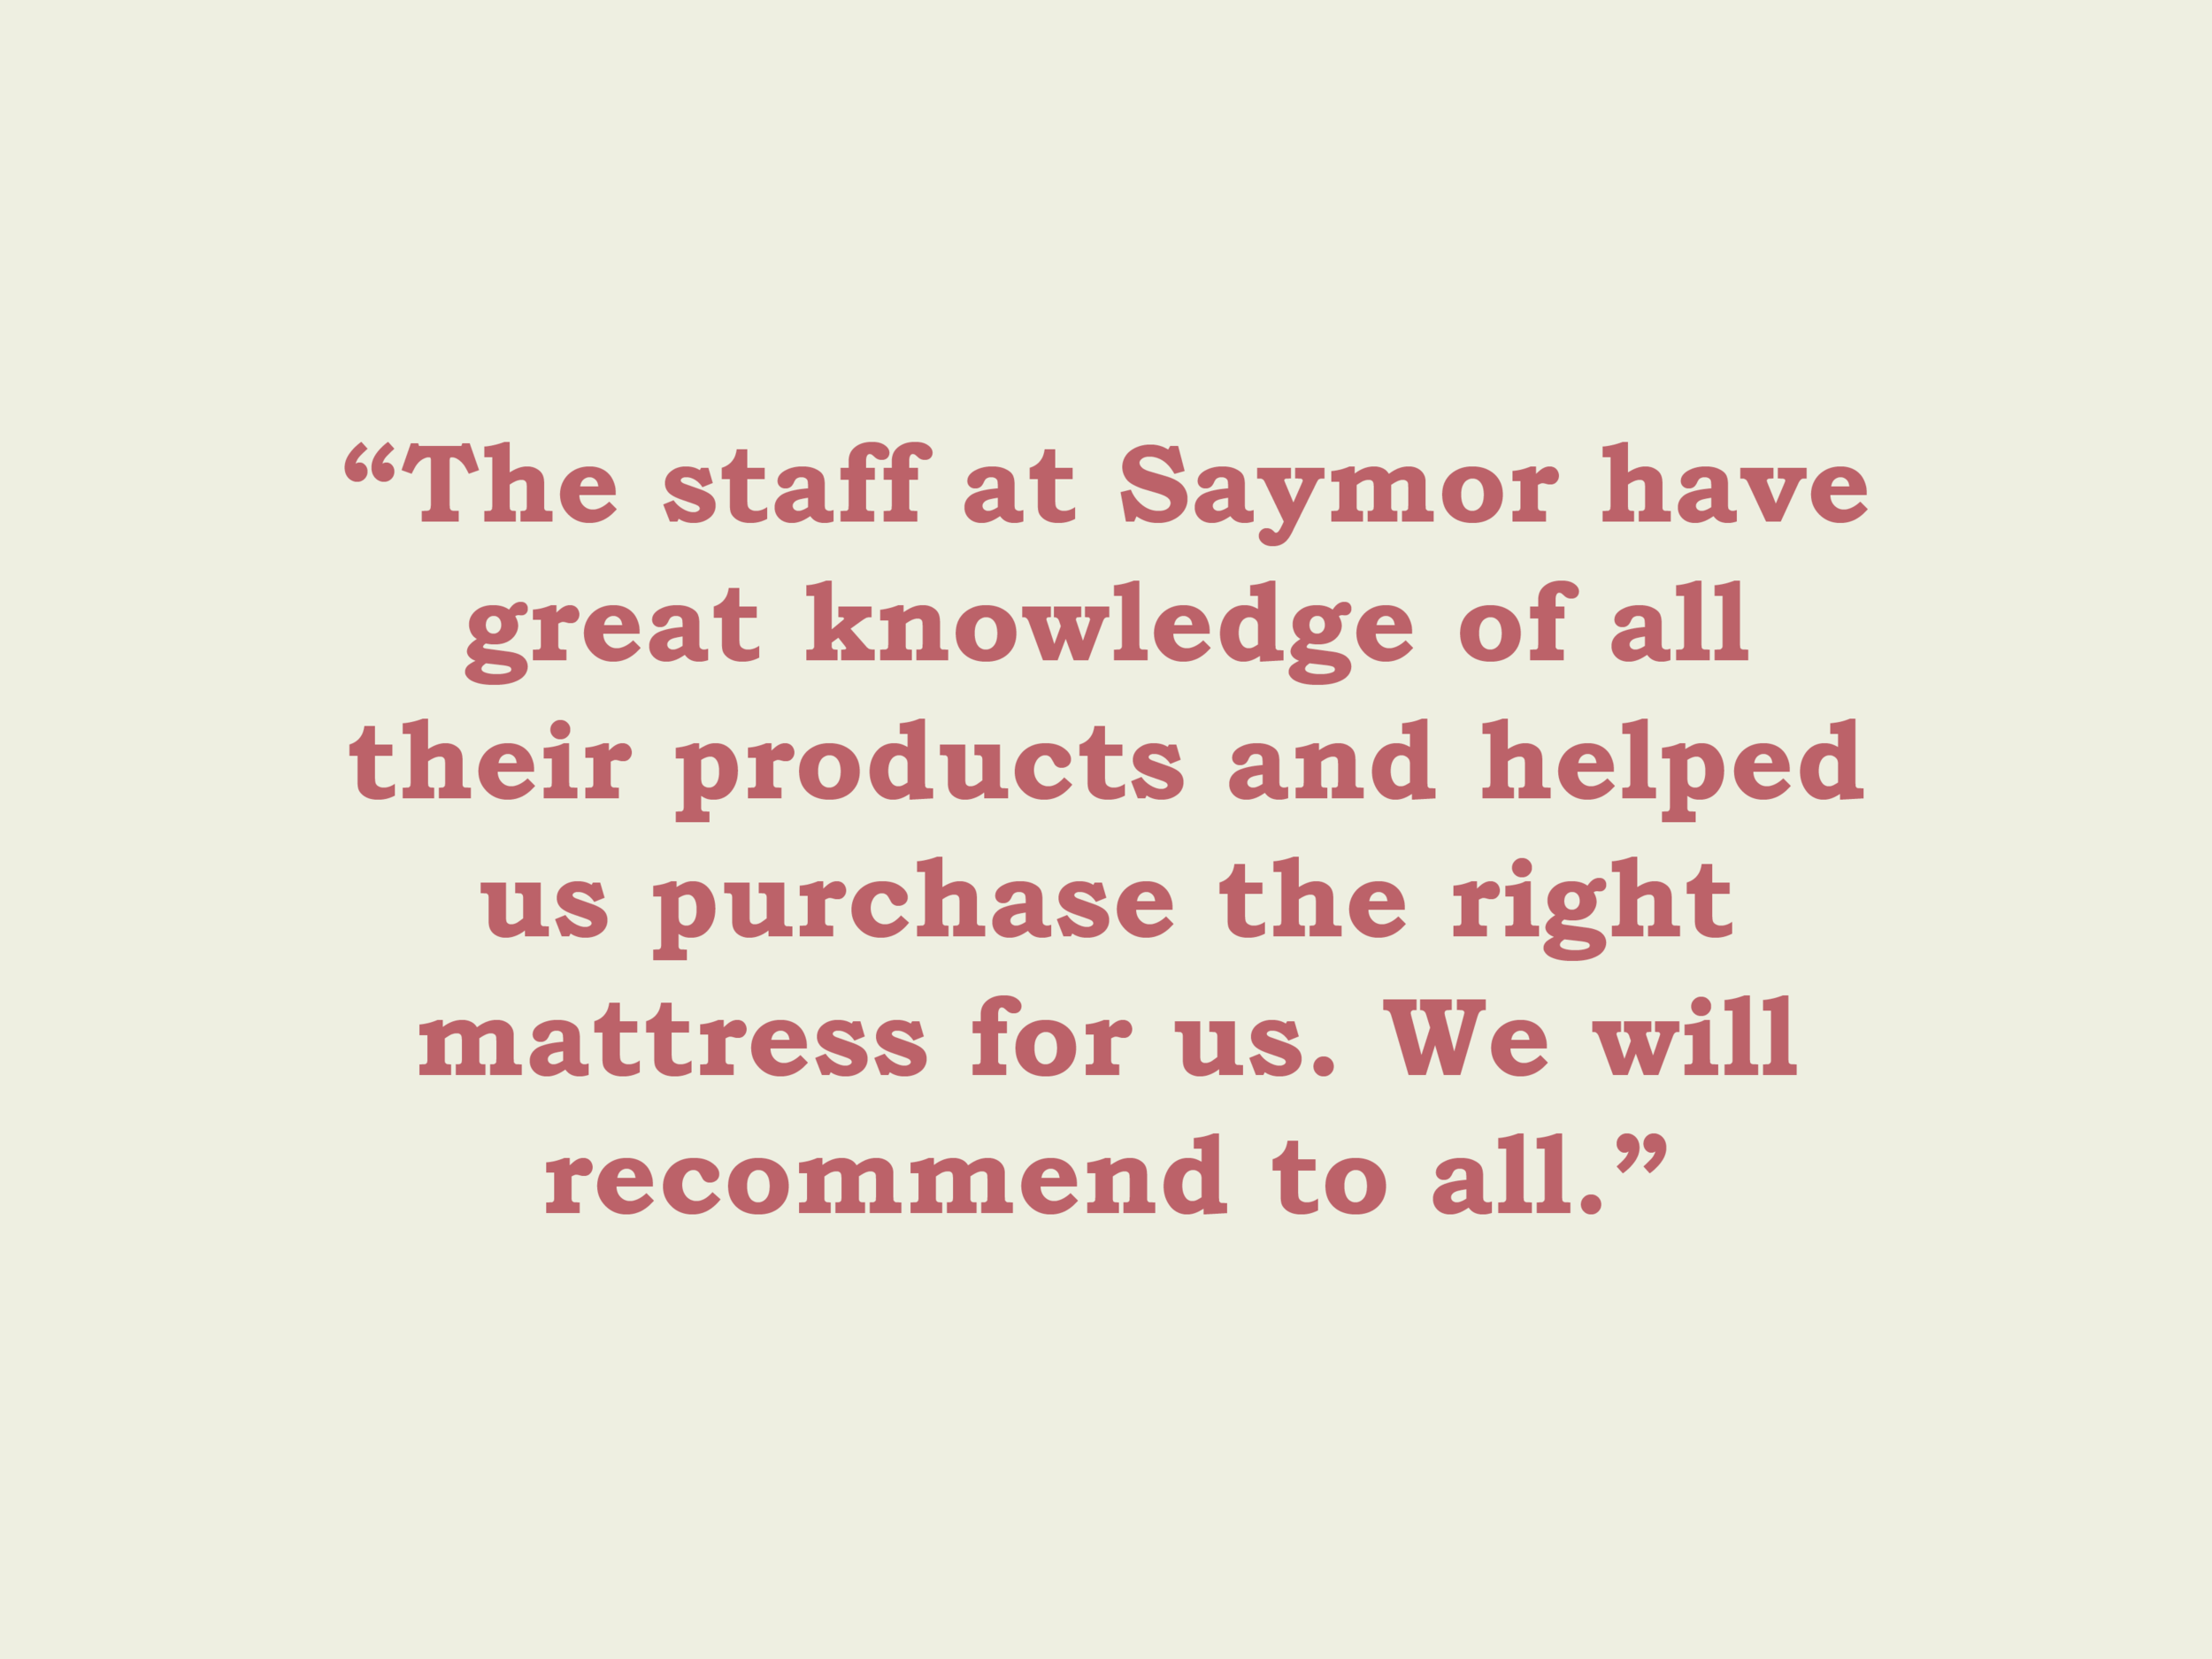 One of our lovely reviews